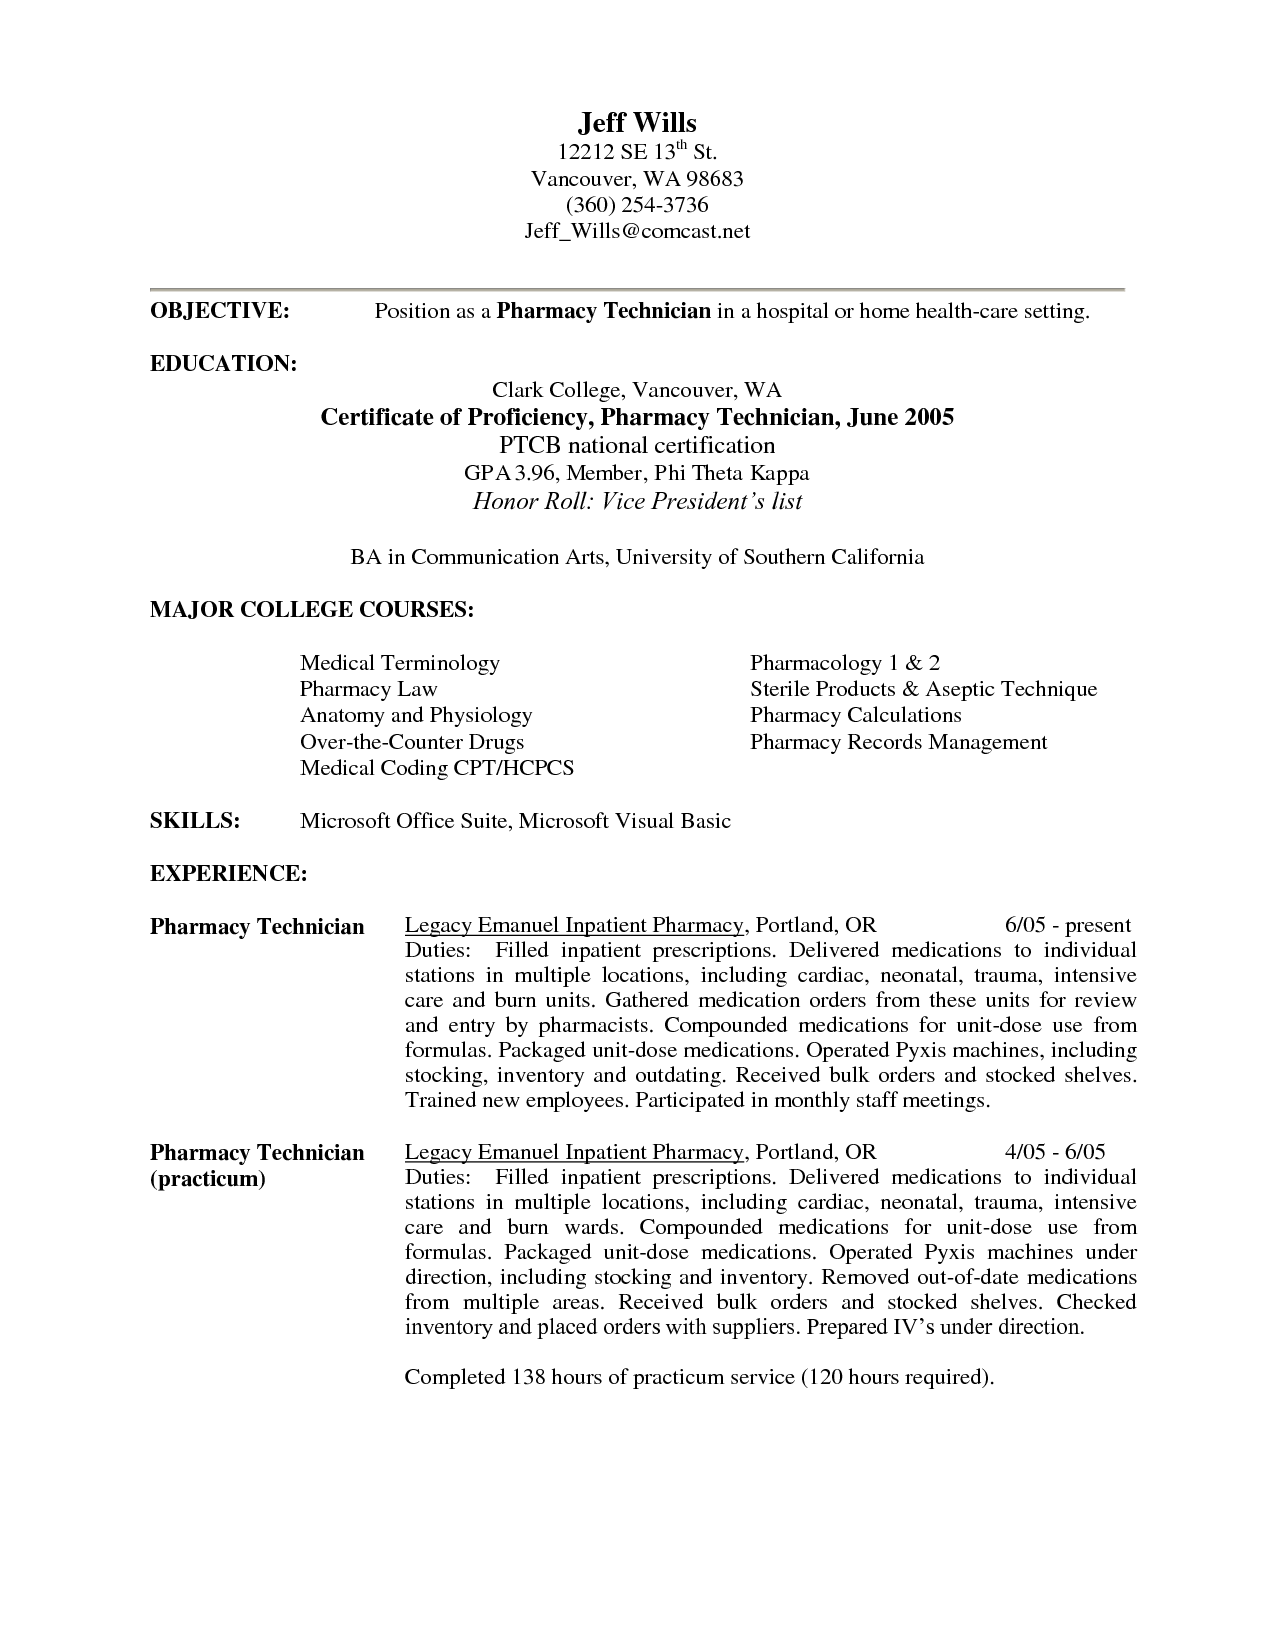 Superbe Pharmacy Technician Objective Resume Samples